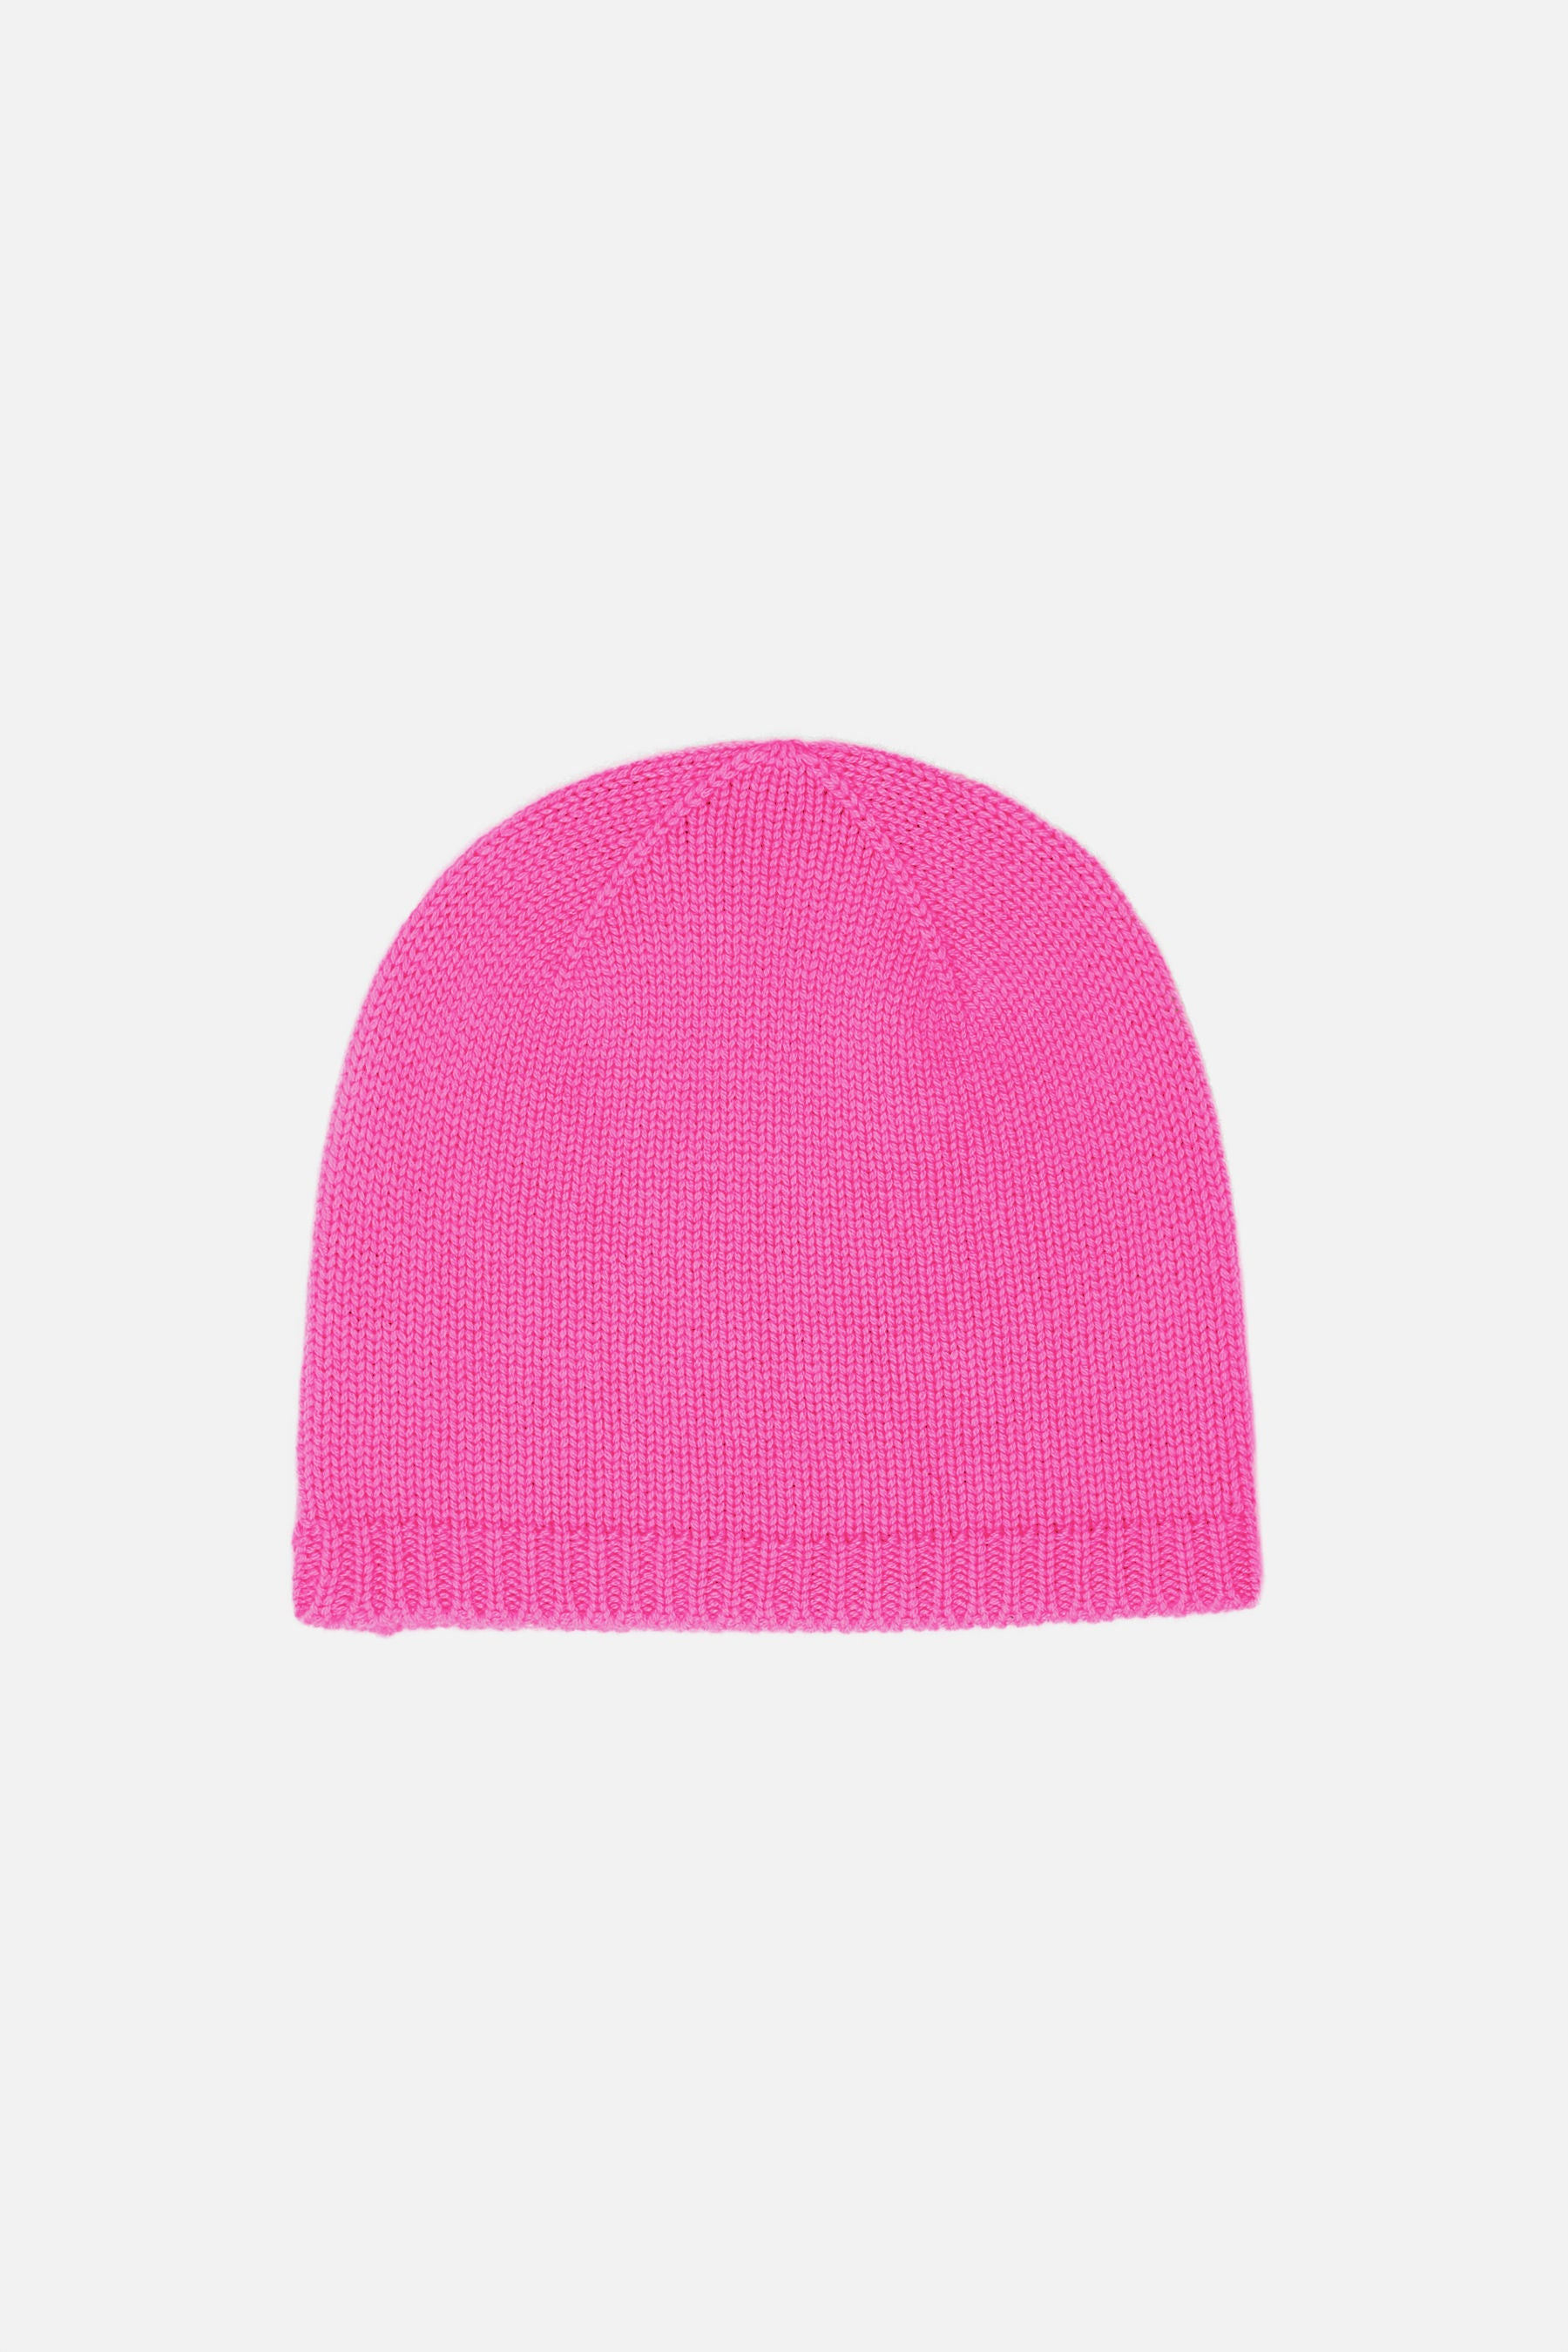 Nao beanie in vivid pink